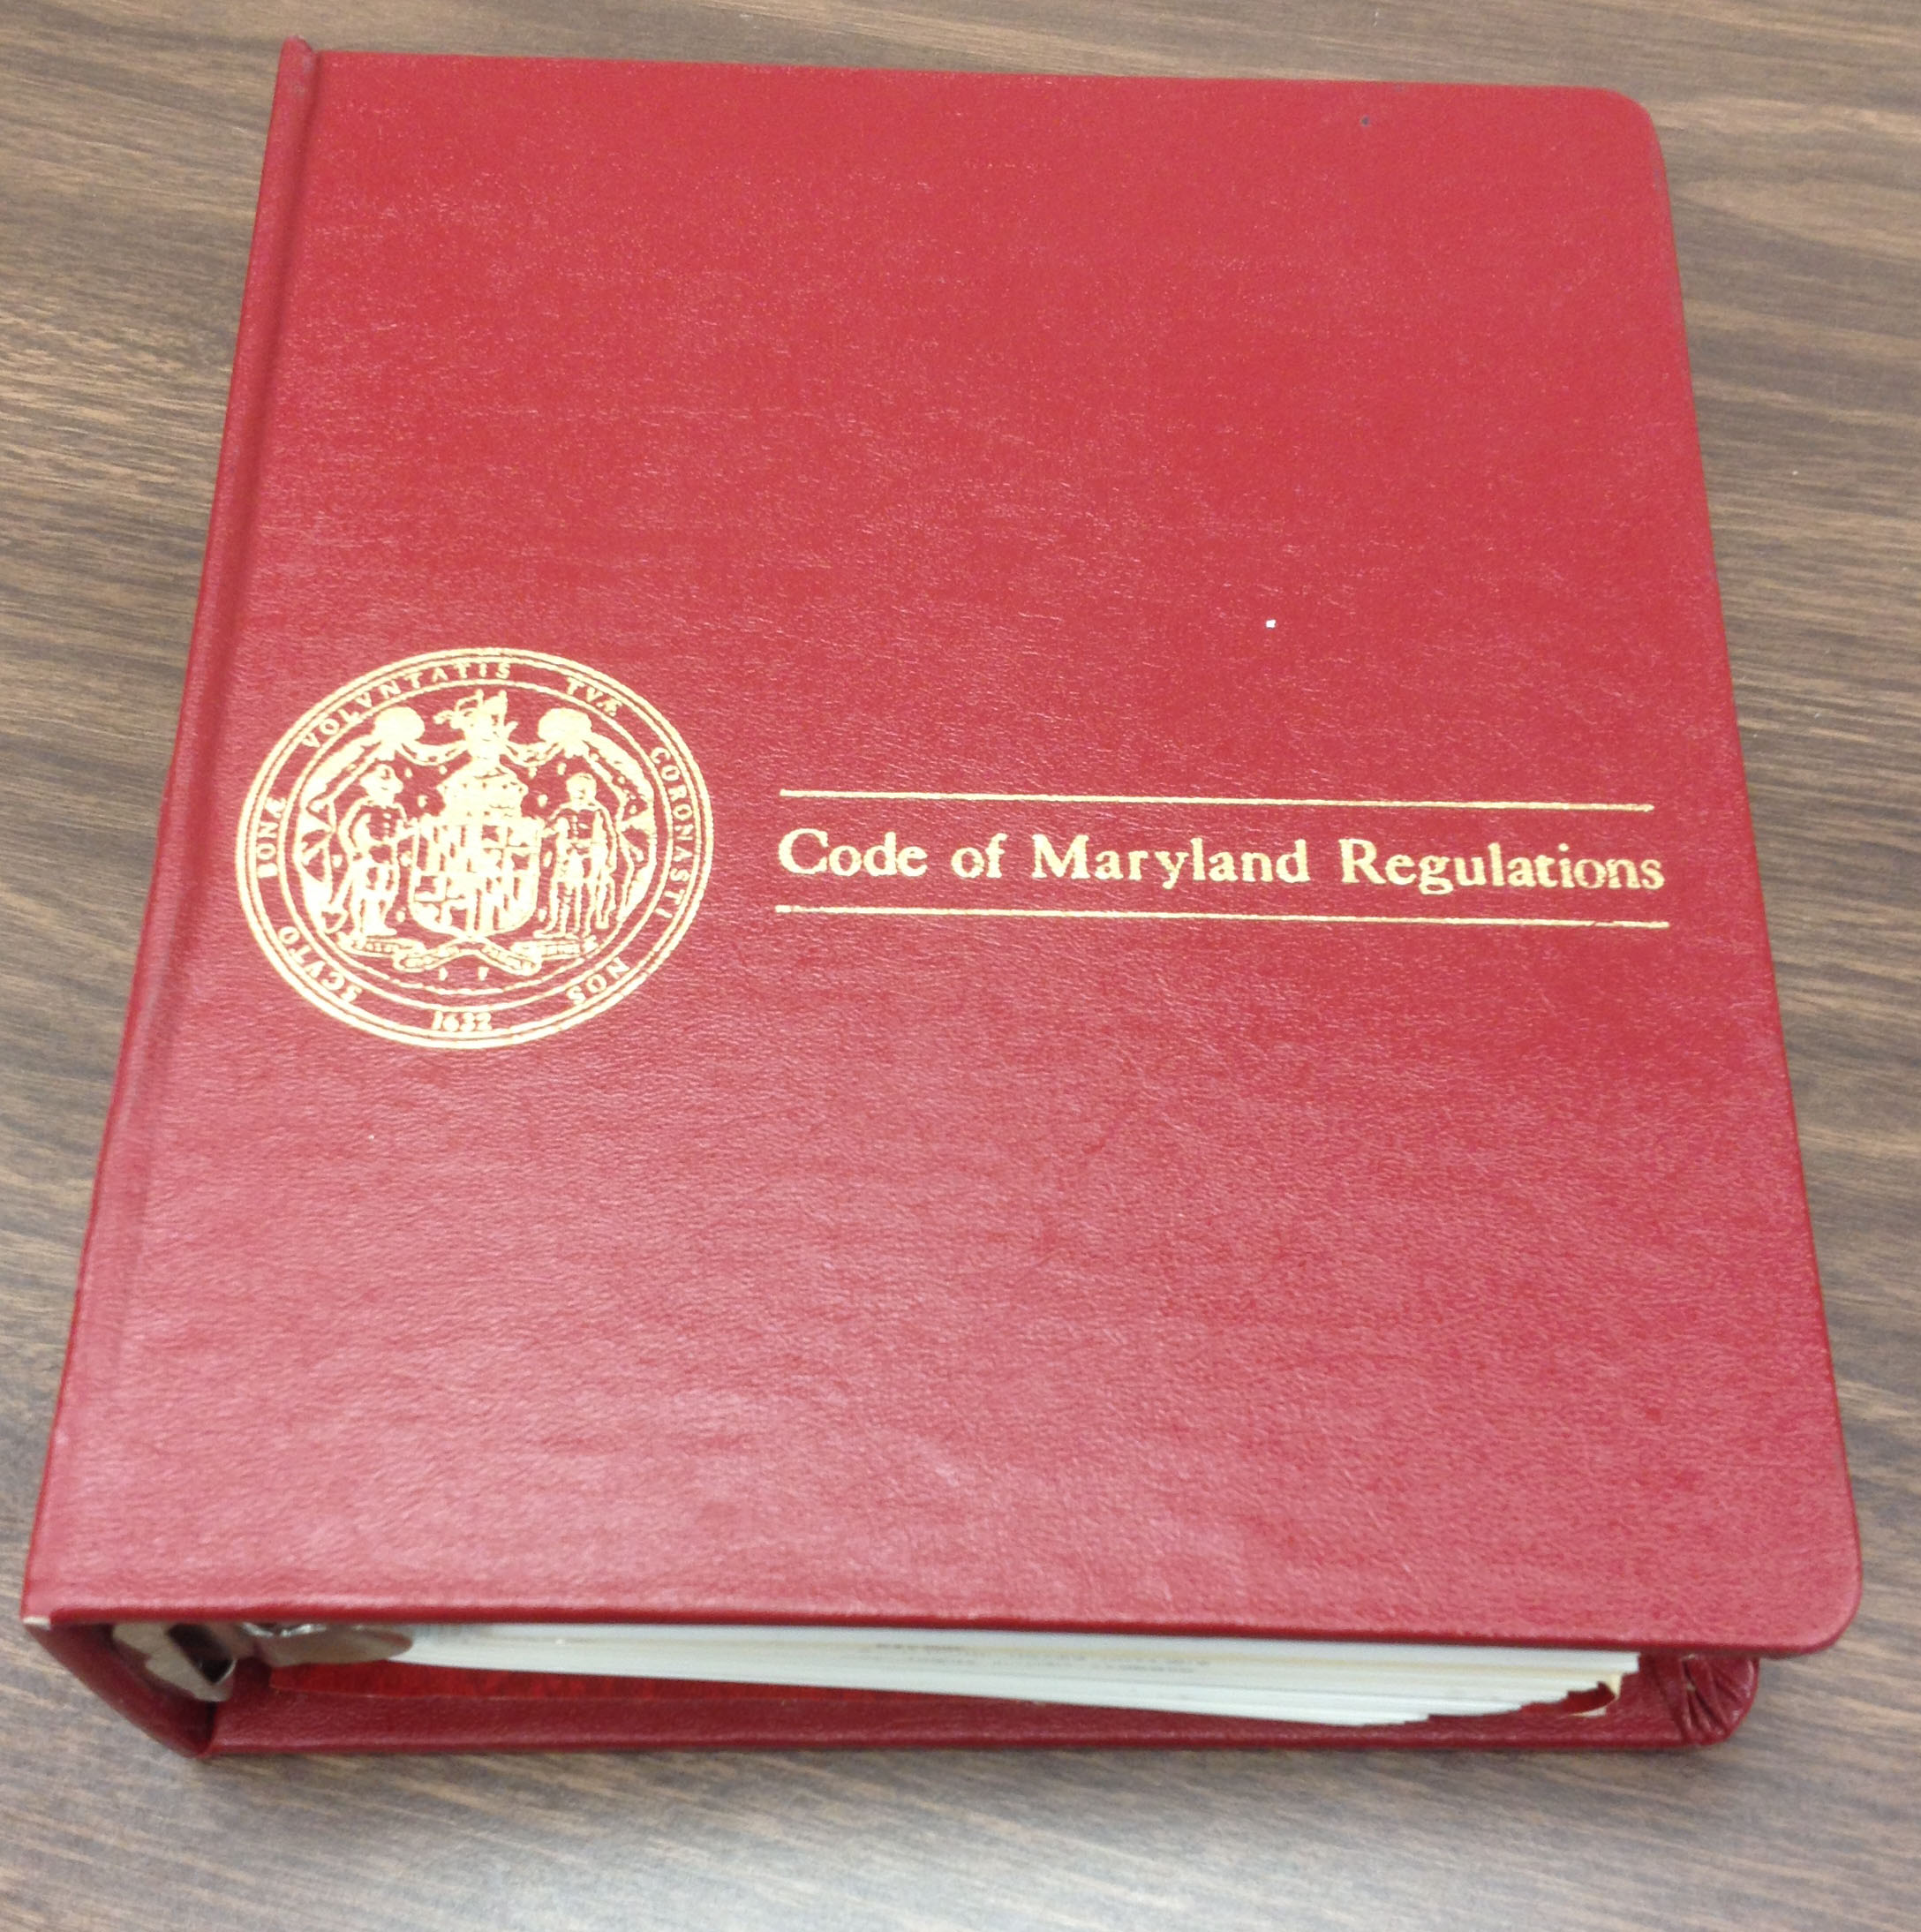 Image of one volume of the Code of Maryland Regulations